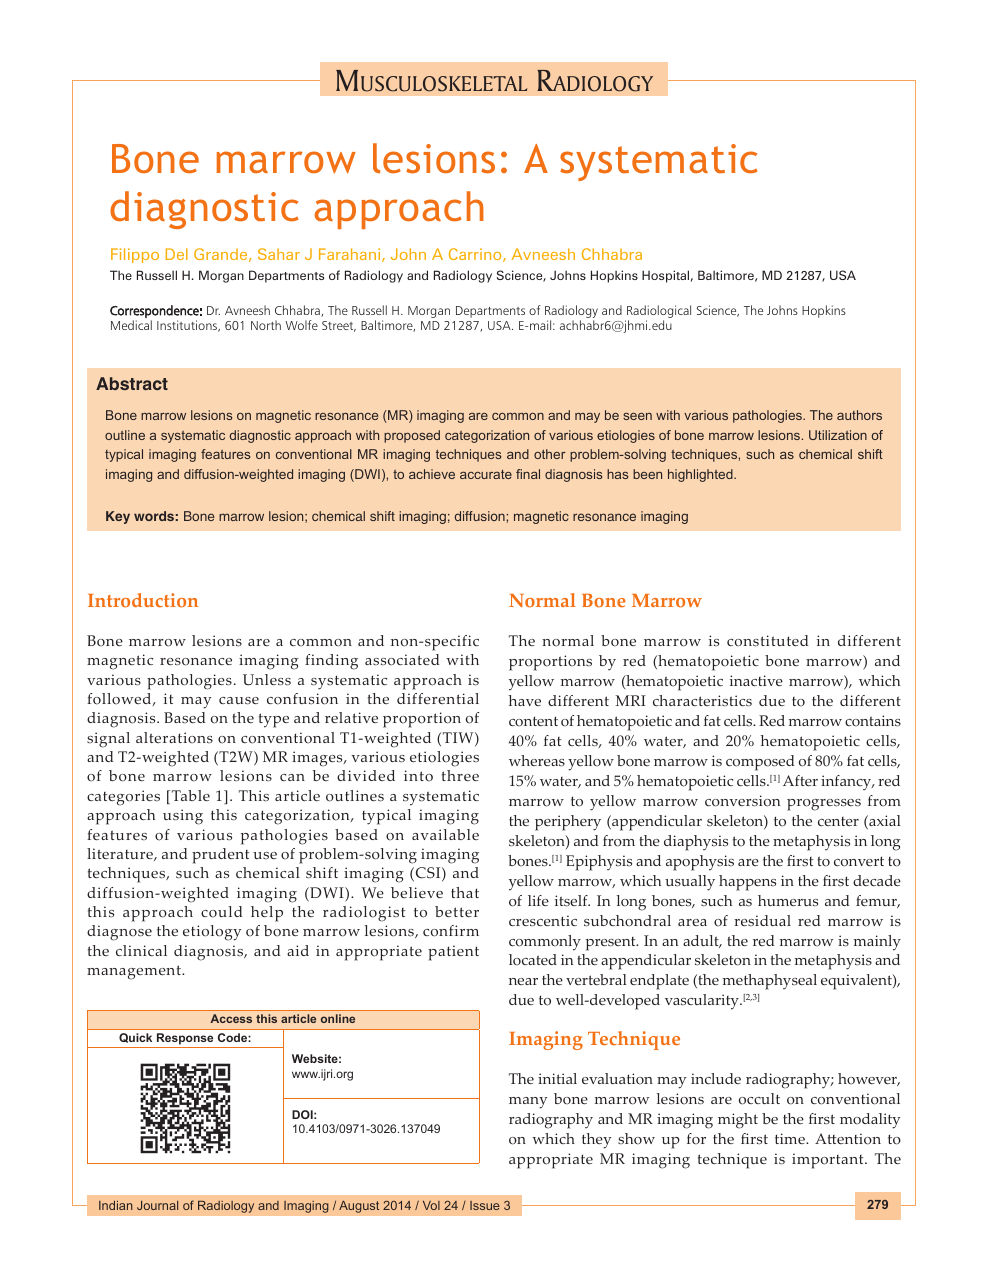 Bone marrow lesions: A systematic diagnostic approach